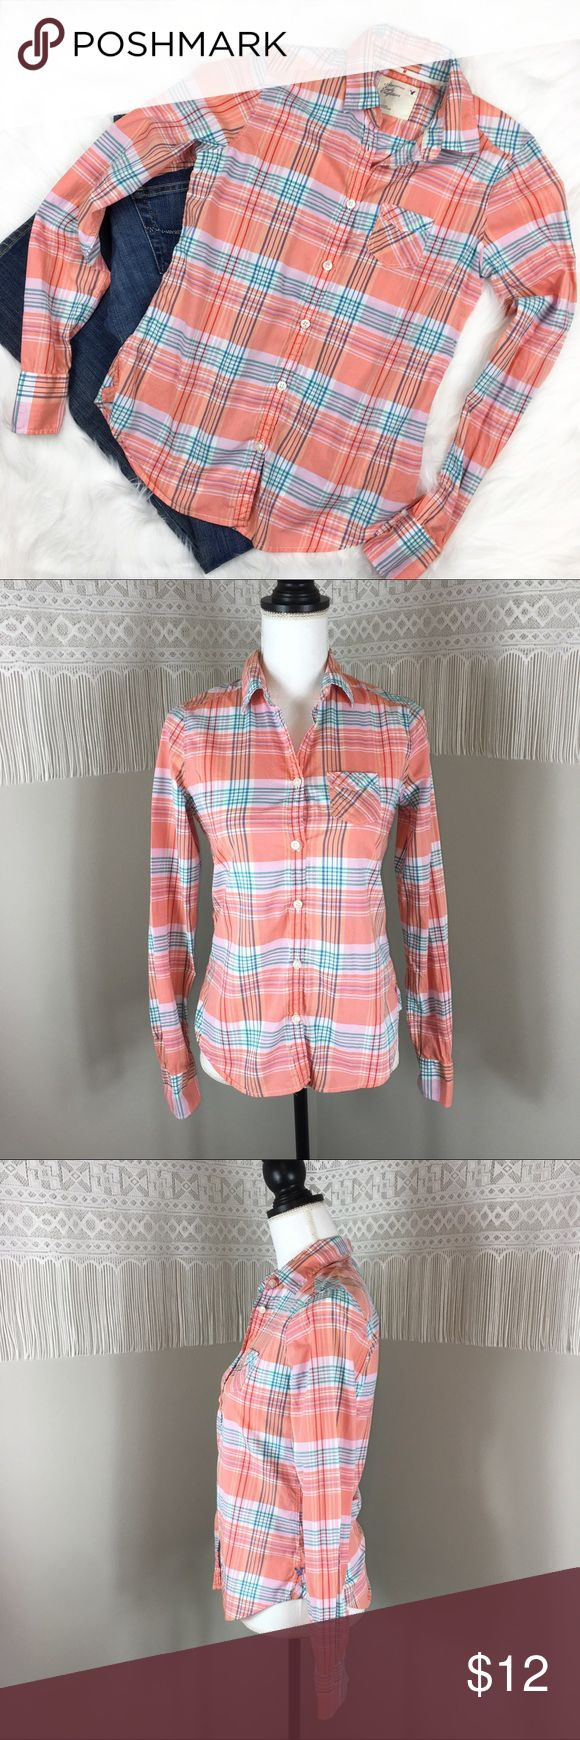 American Eagle Plaid Button Down American Eagle Plaid Button Down. Size 0. Approximate measurements flat laid are 24' long,  16 1/2' bust, and 25' sleeves. GUC with small stain on back as pictured. Perfect back to school shirt! ❌No trades ❌ Modeling ❌No PayPal or off Posh transactions ❤️ I 💕Bundles ❤️Reasonable Offers PLEASE ❤️ American Eagle Outfitters Tops Button Down Shirts